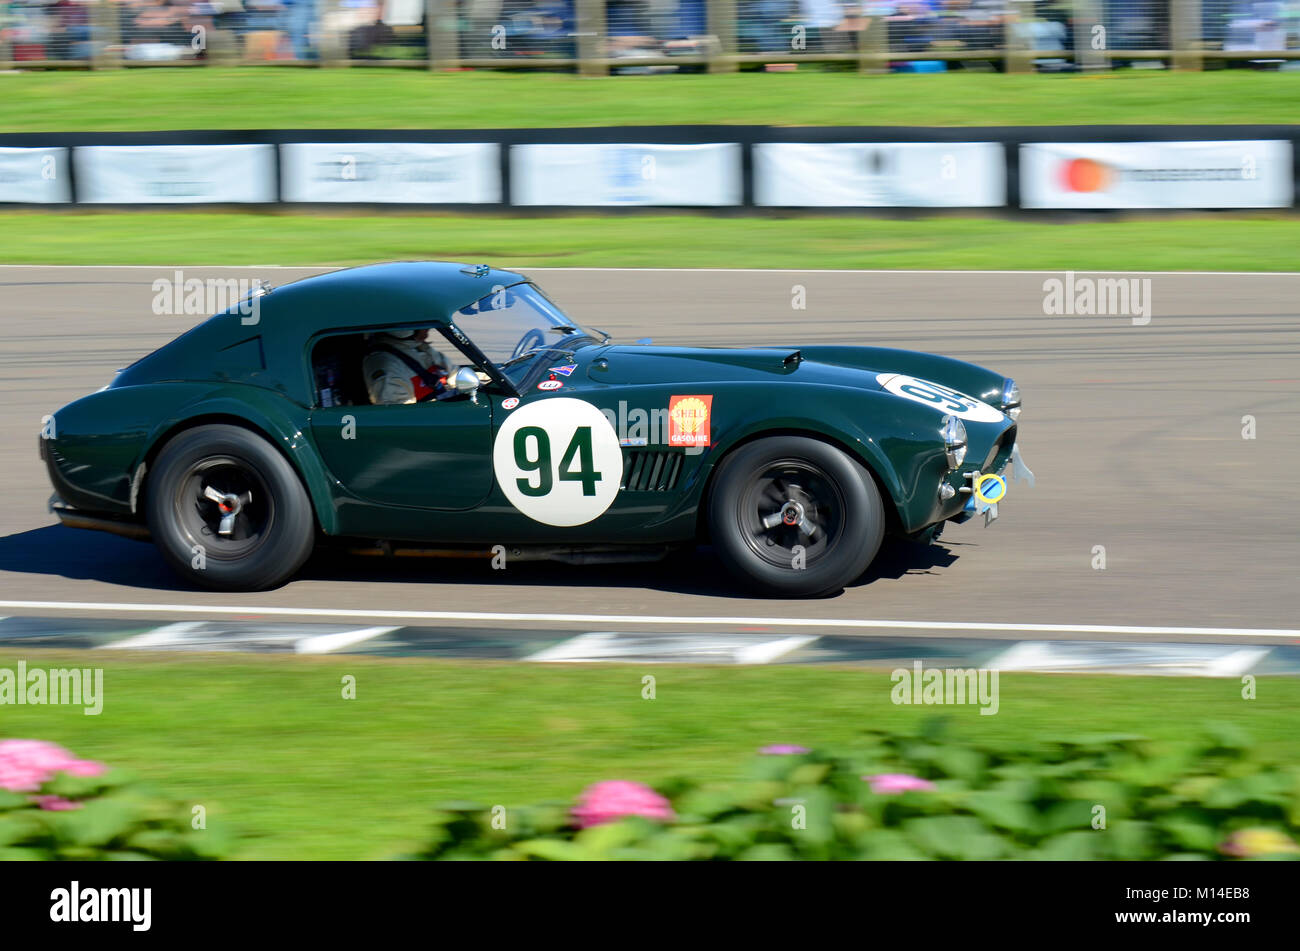 1962 AC Cobra owned by Jason Wright racing in the RAC TT Celebration at the Goodwood Revival - Stock Image